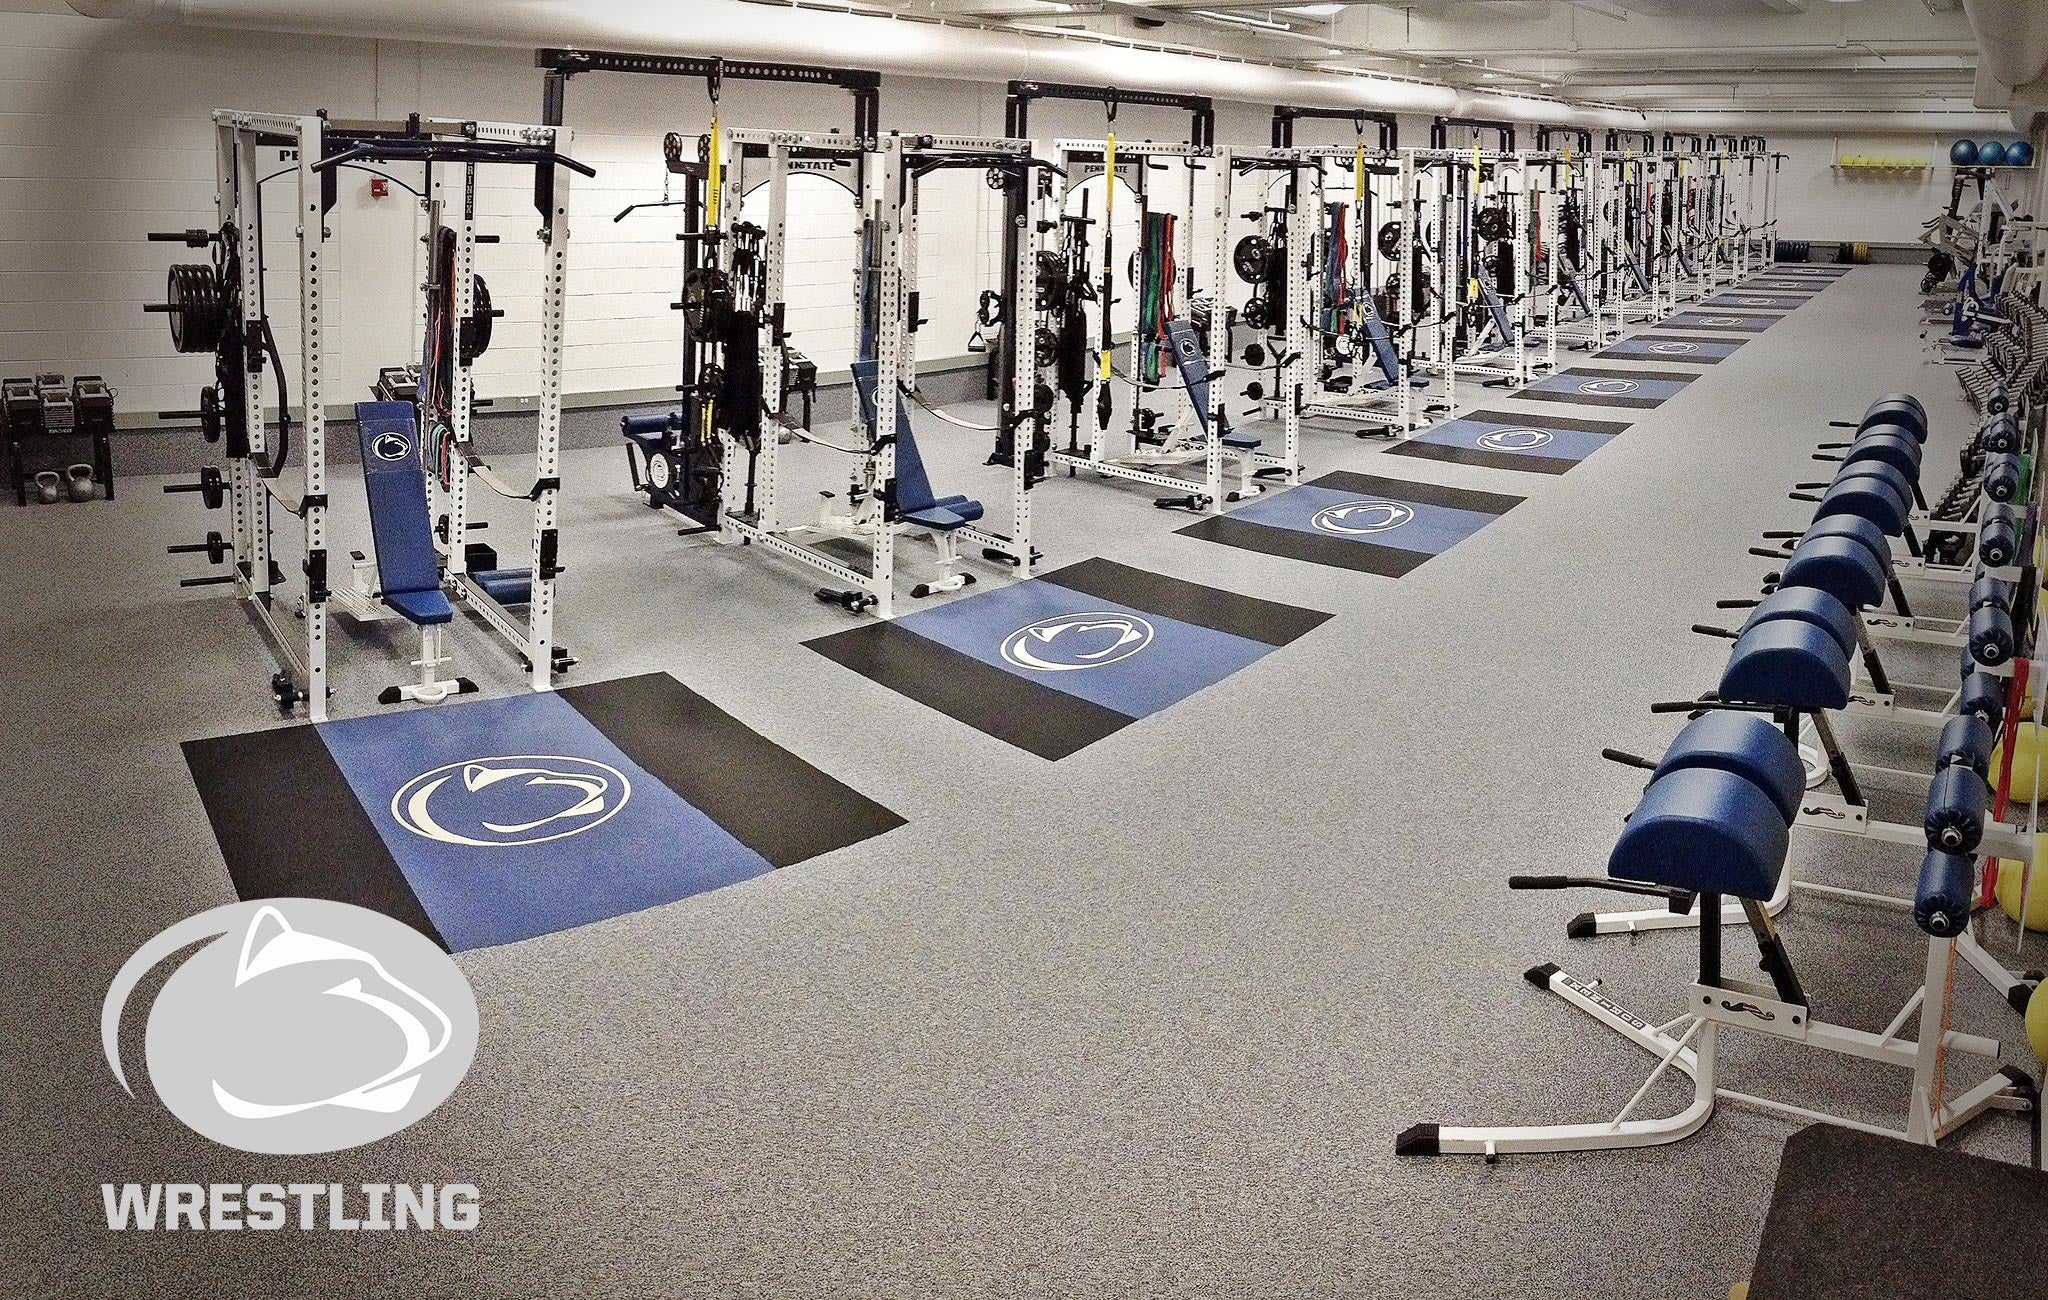 Penn State wrestling Sorinex strength and conditioning facility